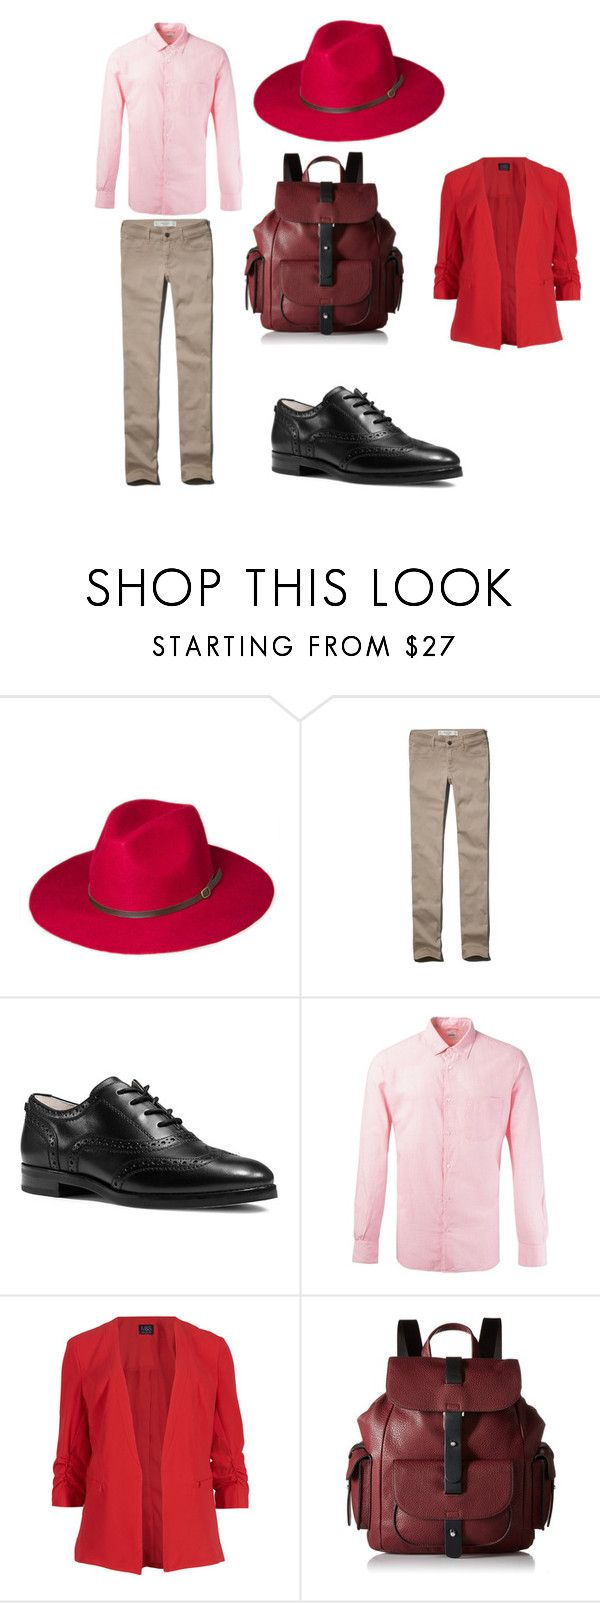 """""""Valentine's Love: #2"""" by indigofudge on Polyvore featuring Abercrombie & Fitch, MICHAEL Michael Kors, Aspesi, M&S Collection, Kenneth Cole Reaction, women's clothing, women's fashion, women, female and woman"""